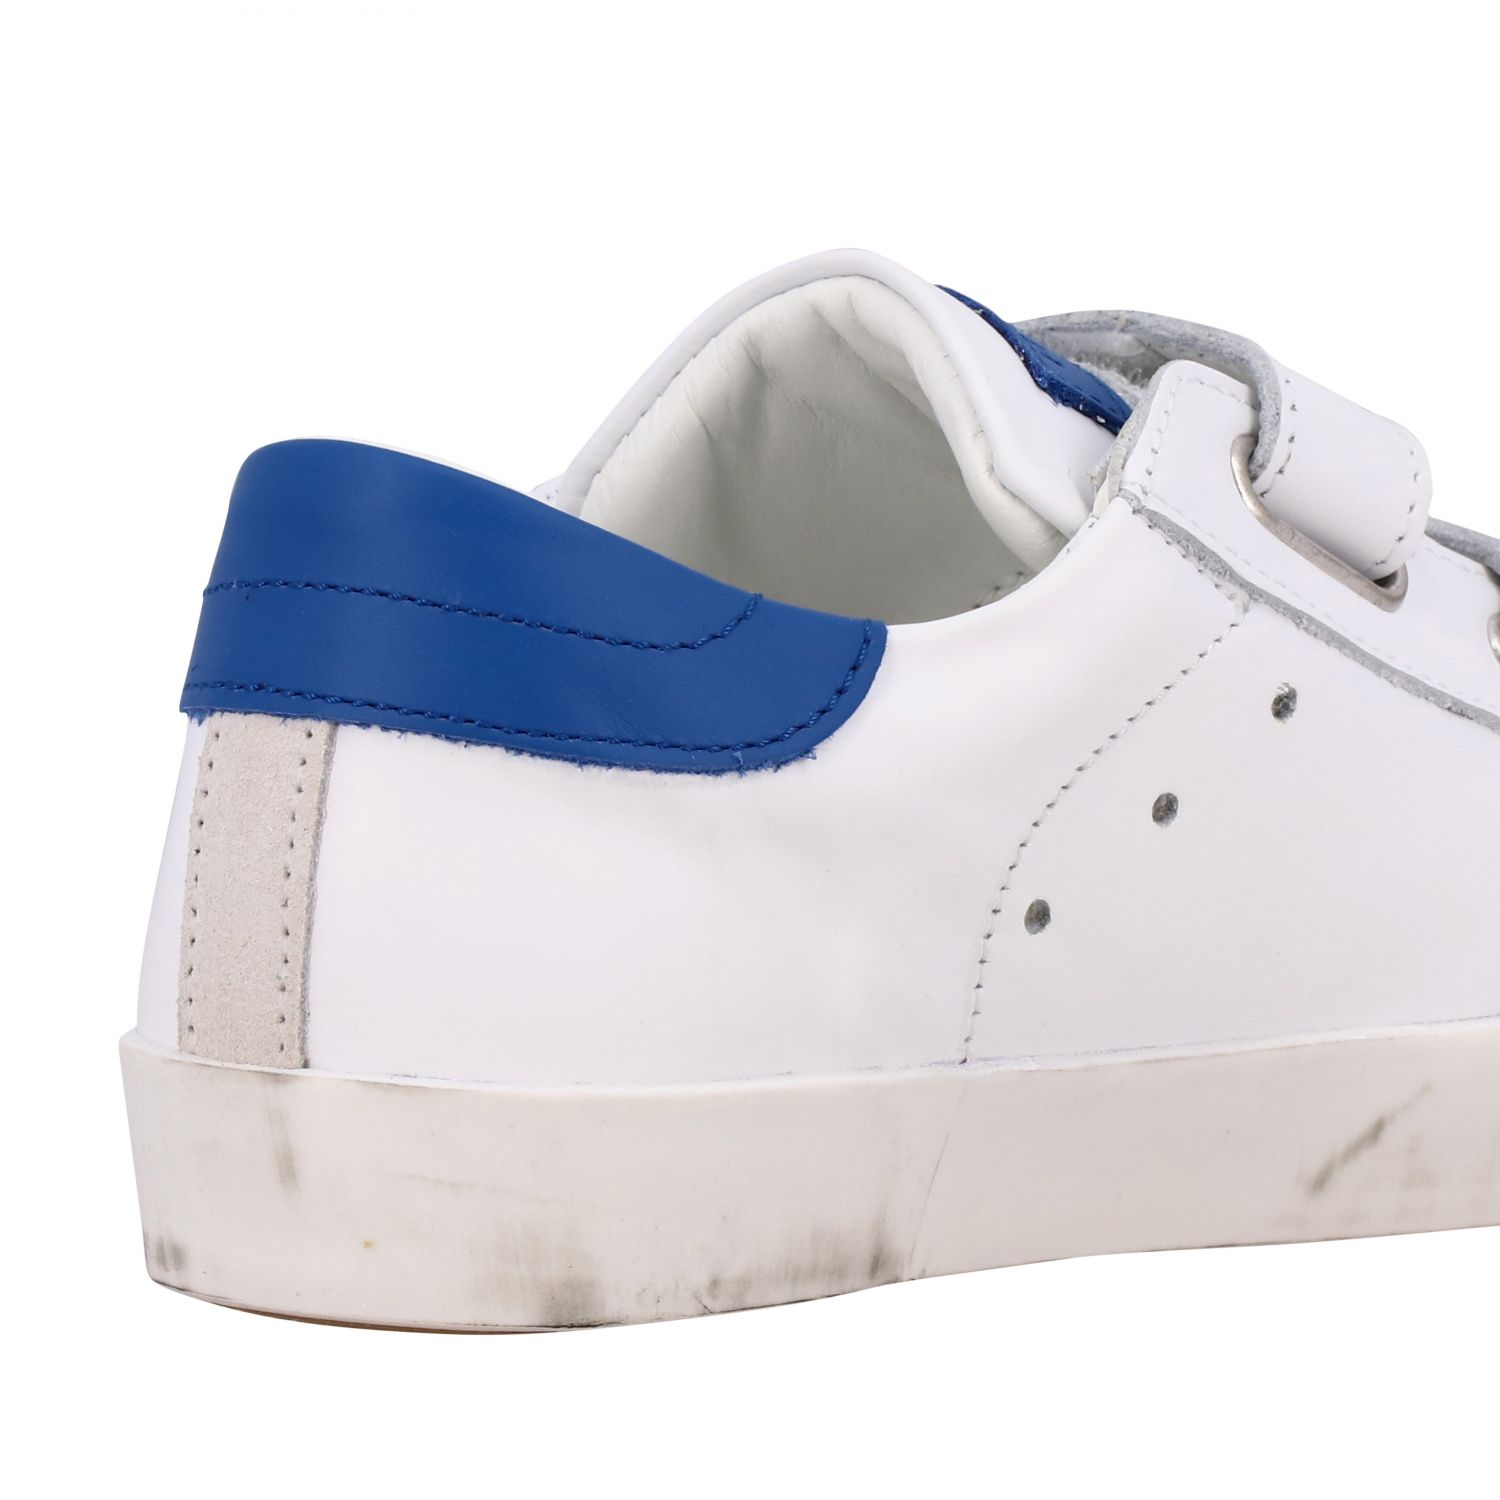 Shoes kids Philippe Model white 5